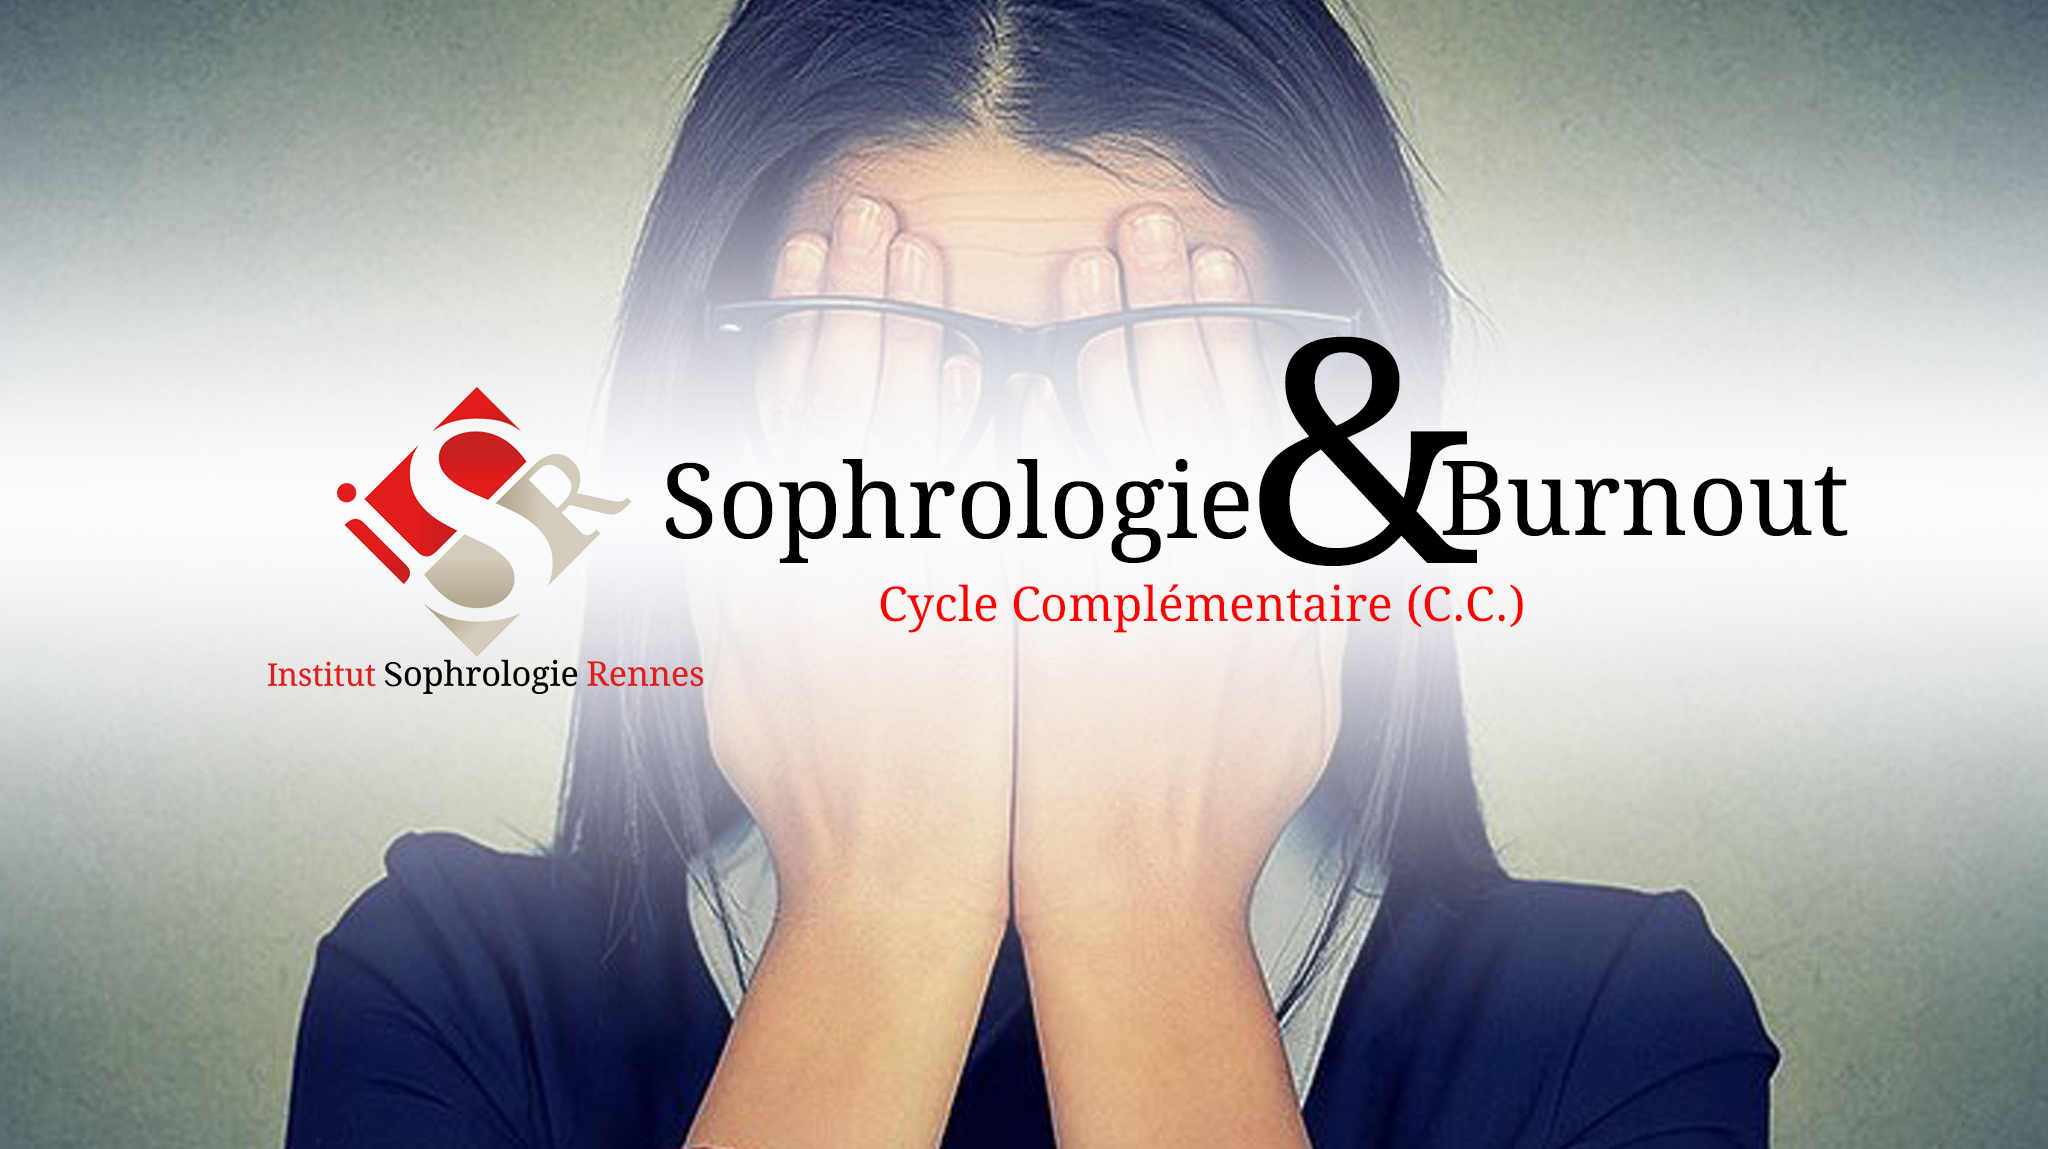 Sophrologie & Burnout